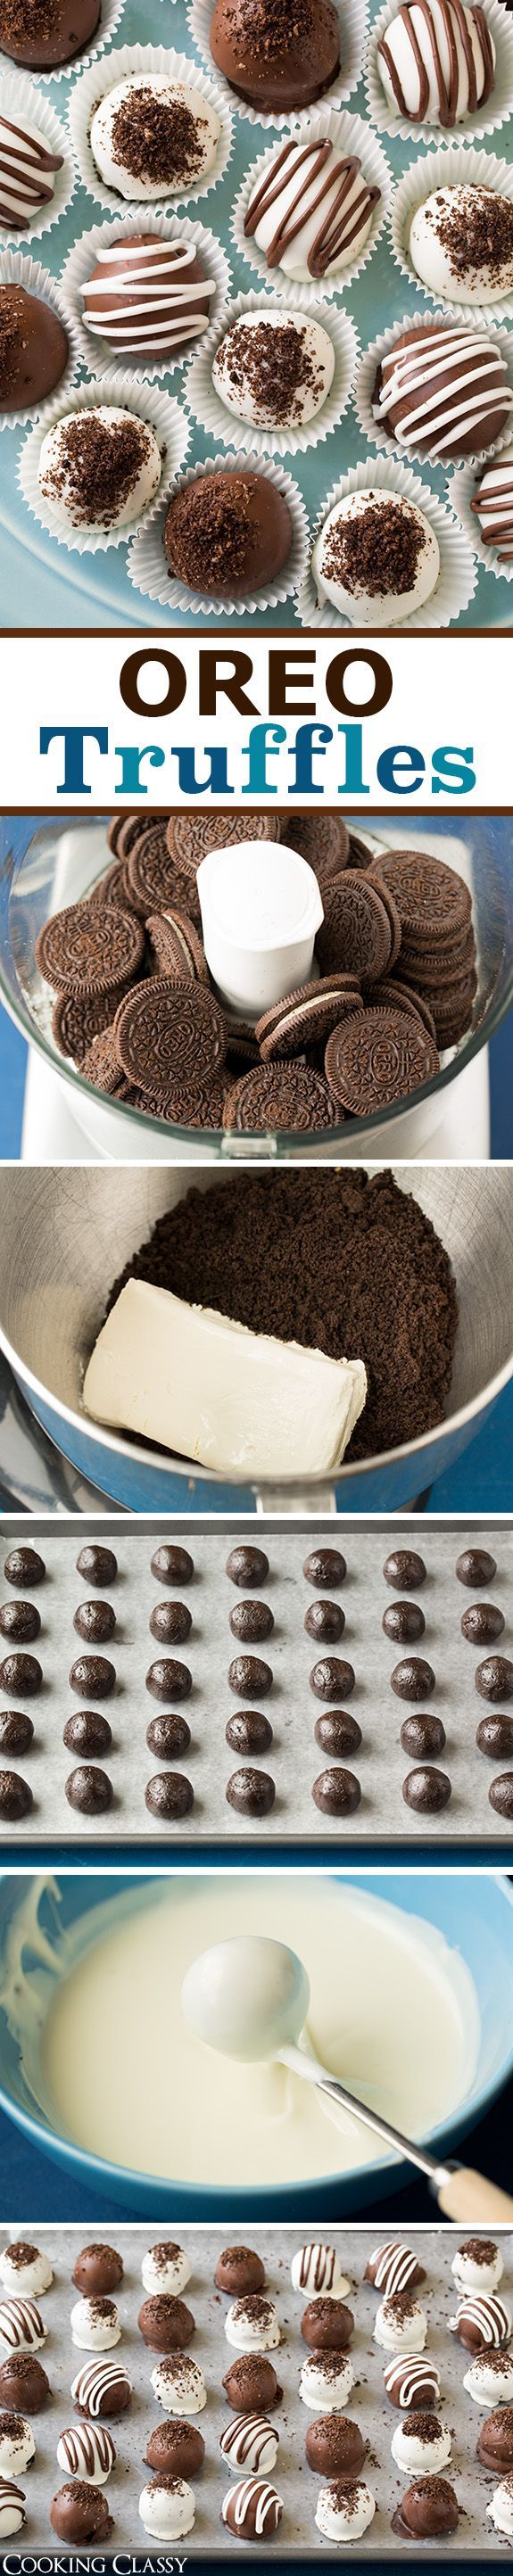 Oreo Truffles - 3 INGREDIENTS! These are one of my FAVORITE treats and they are so easy to make!